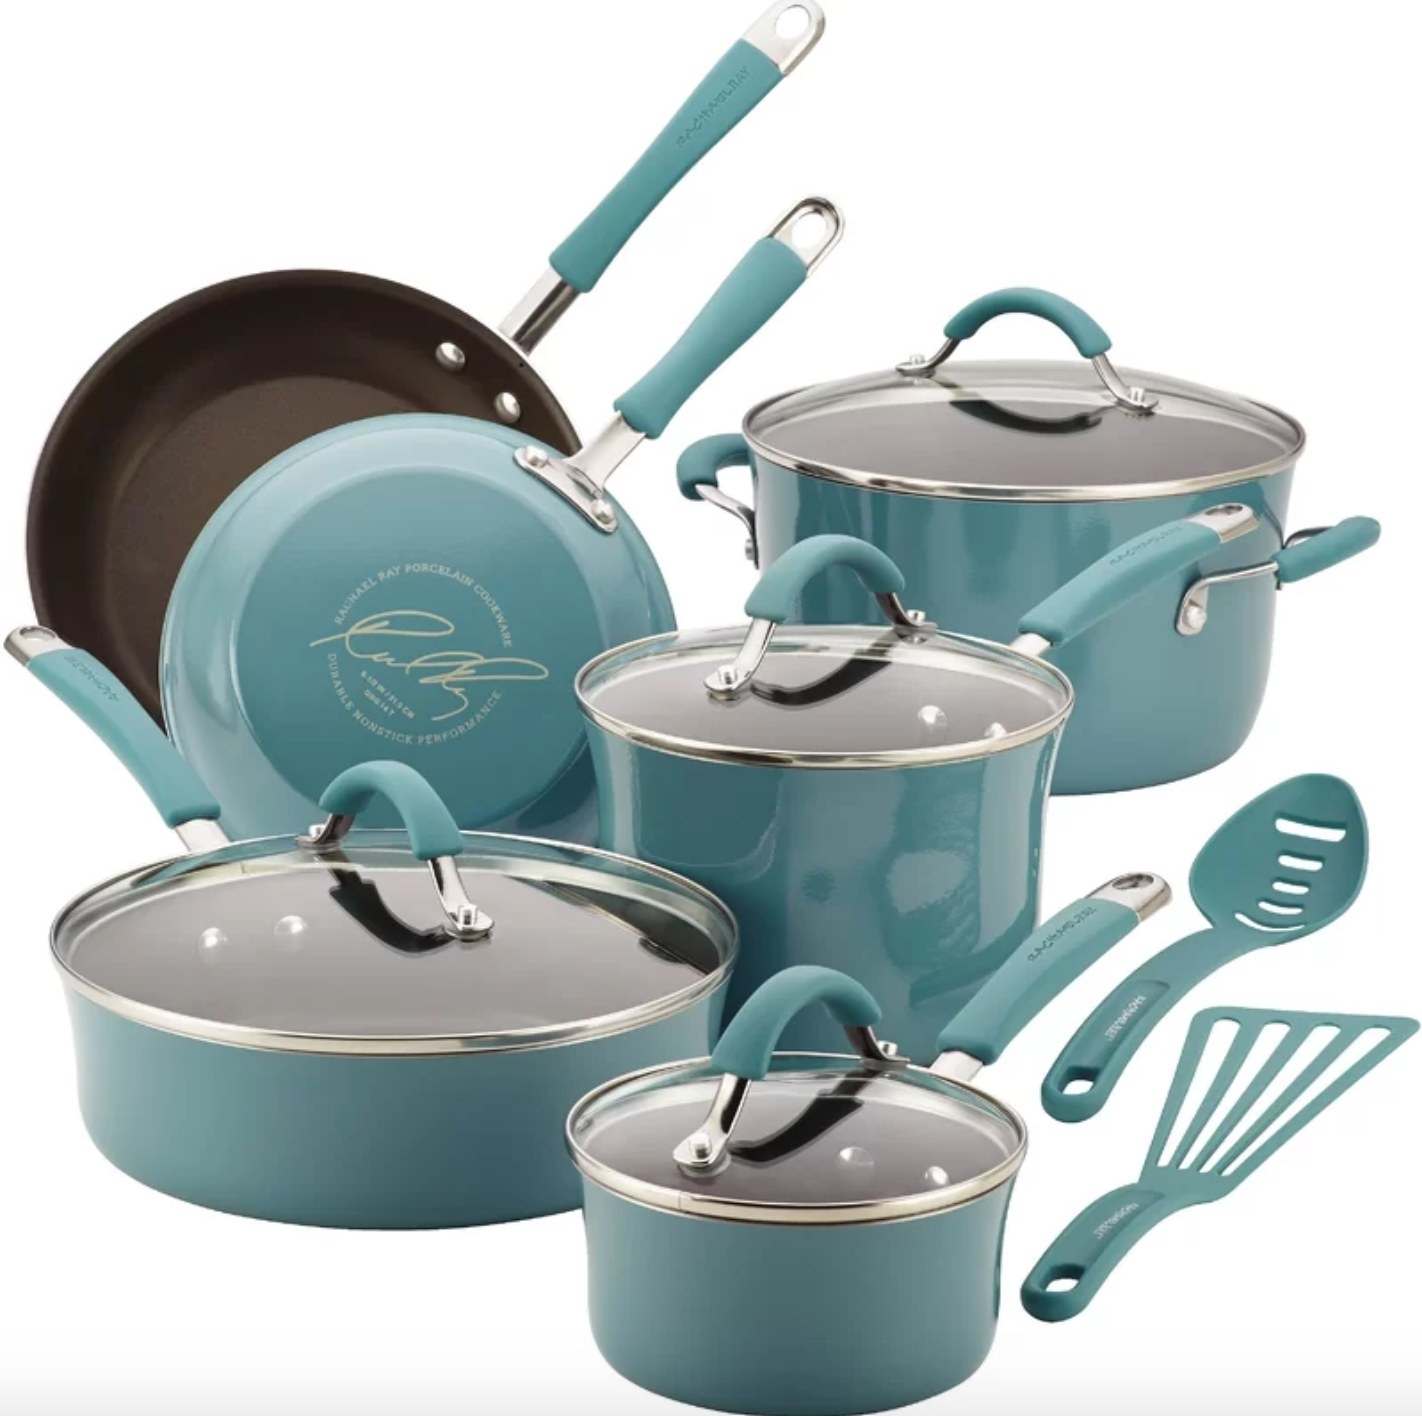 The cookare set